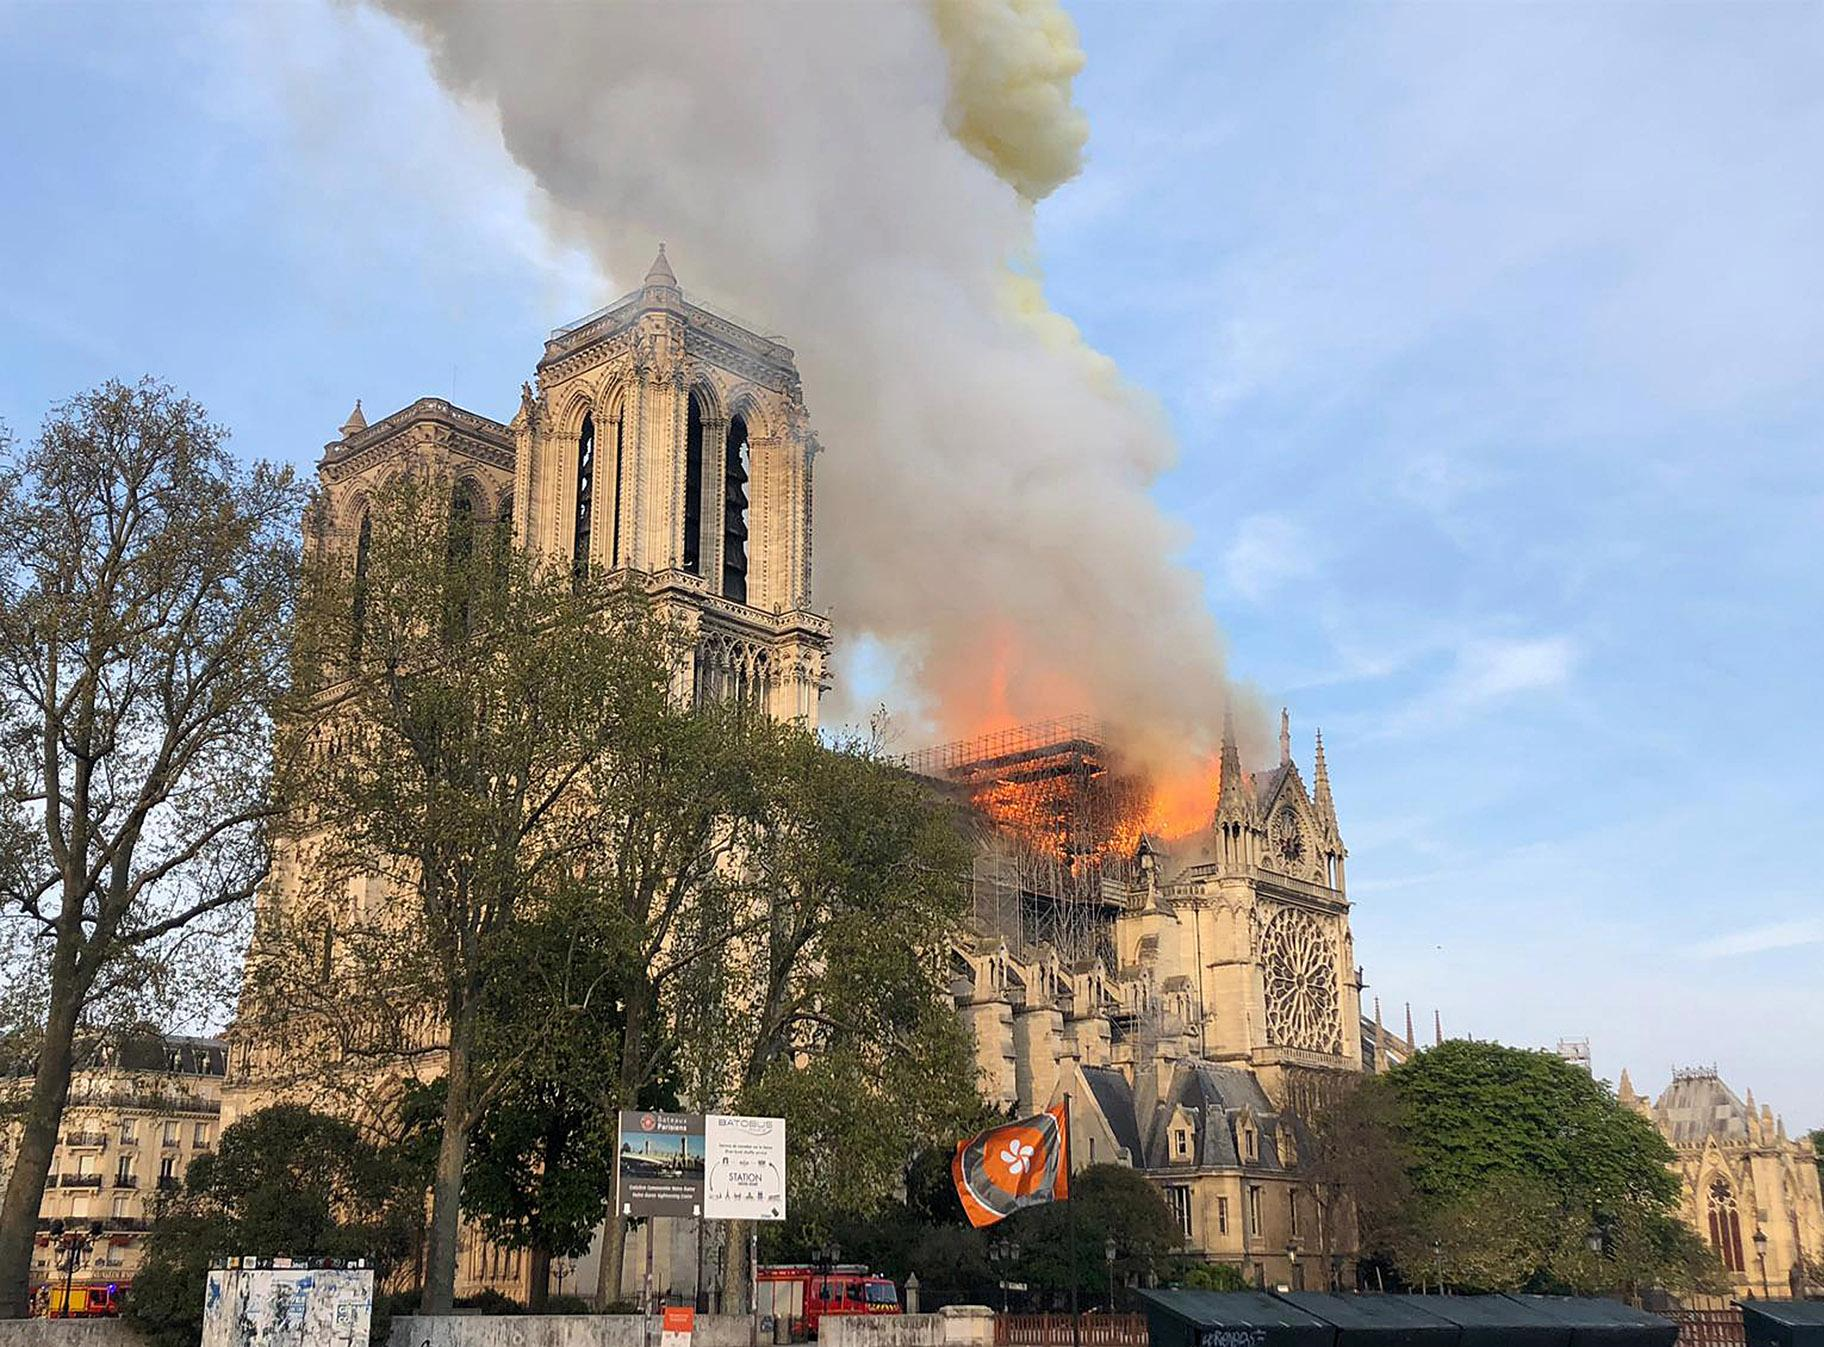 Notre Dame Cathedral is burning in Paris on Monday, April 15, 2019. Massive plumes of yellow brown smoke is filling the air above Notre Dame Cathedral and ash is falling on tourists and others around the island that marks the center of Paris. (AP Photo)